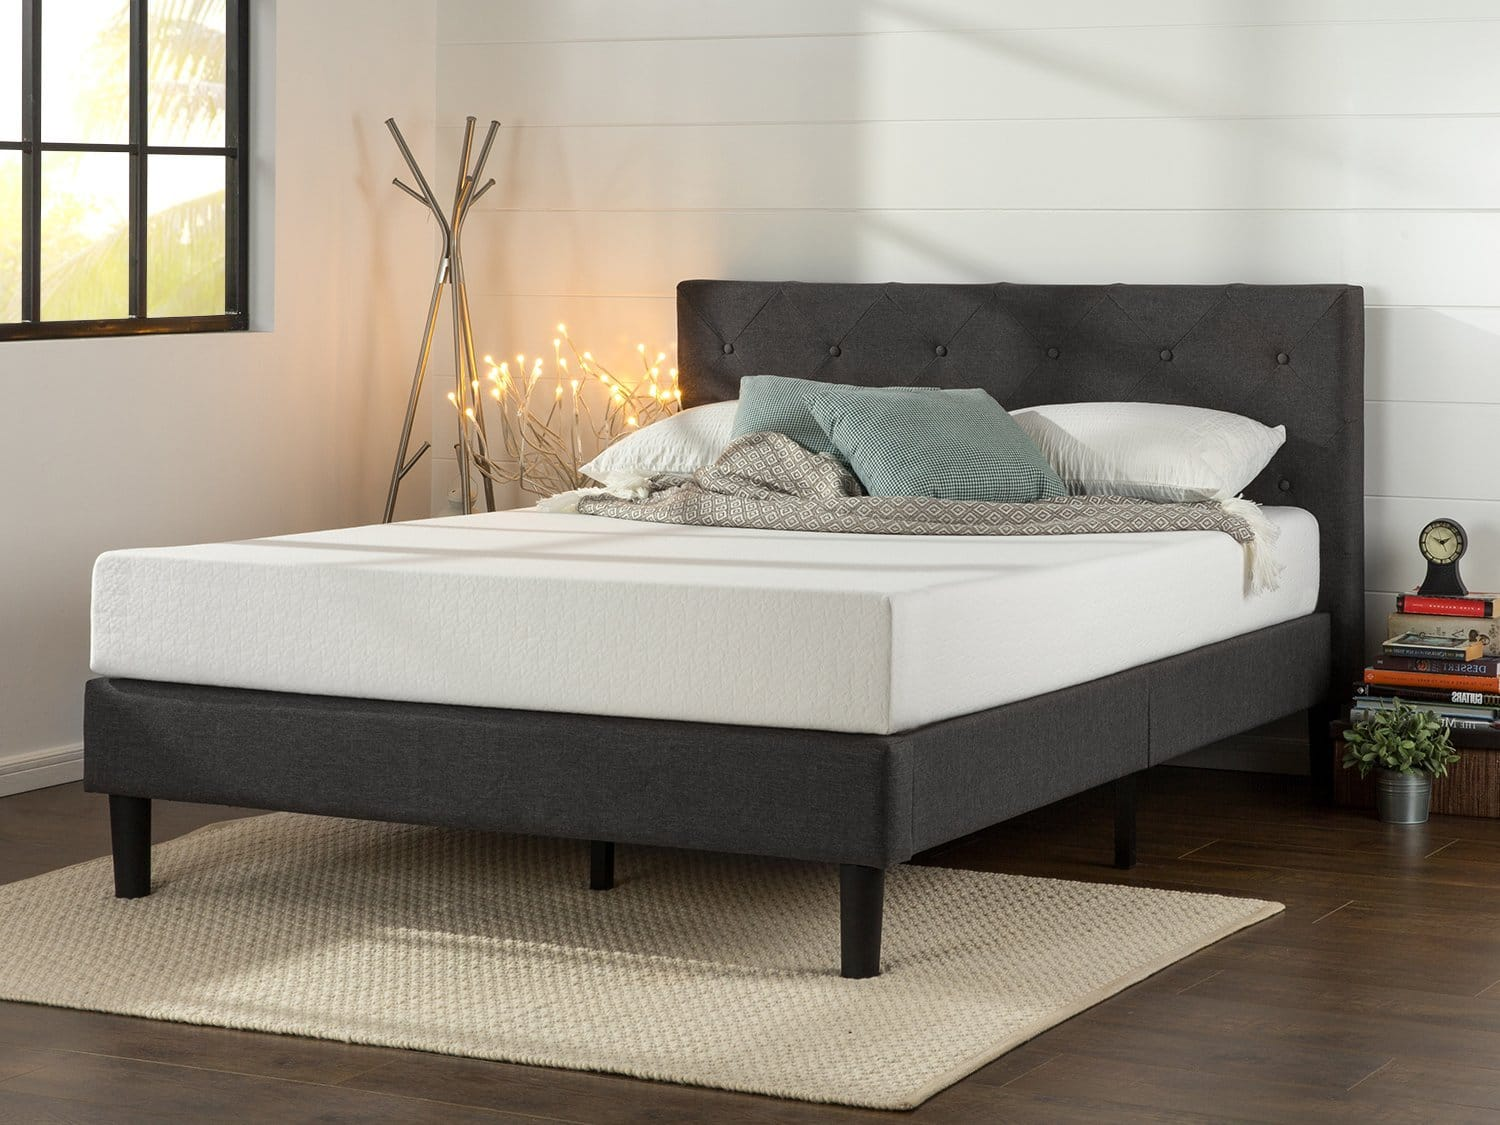 Great Zinus Upholstered Diamond Stitched Platform Bed Queen Slickdeals net